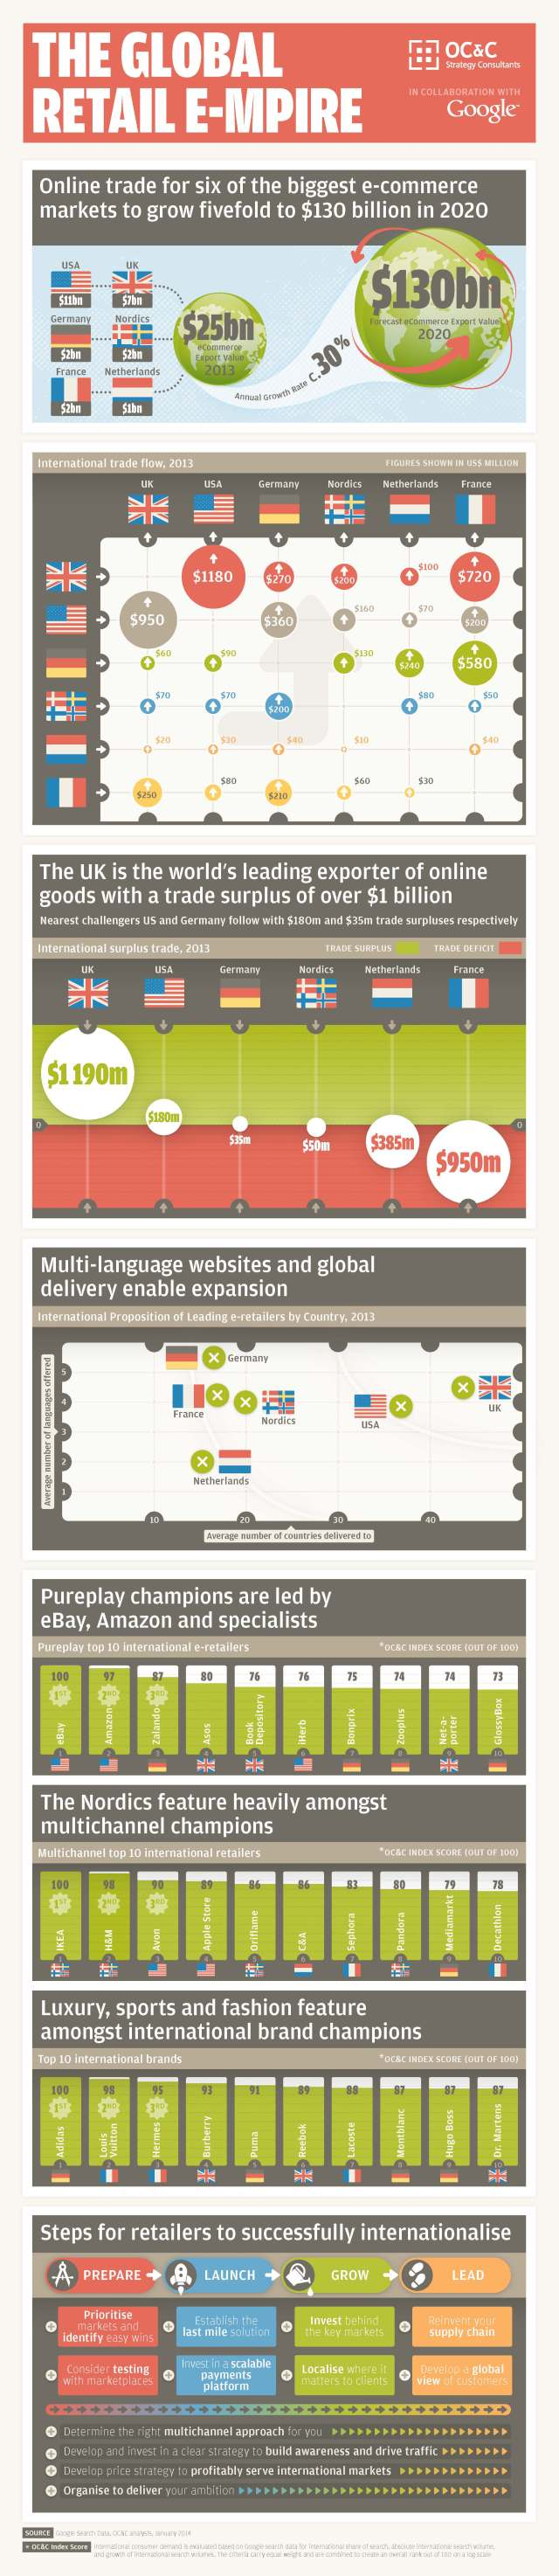 Global Retail e-mpire_Infographic Final